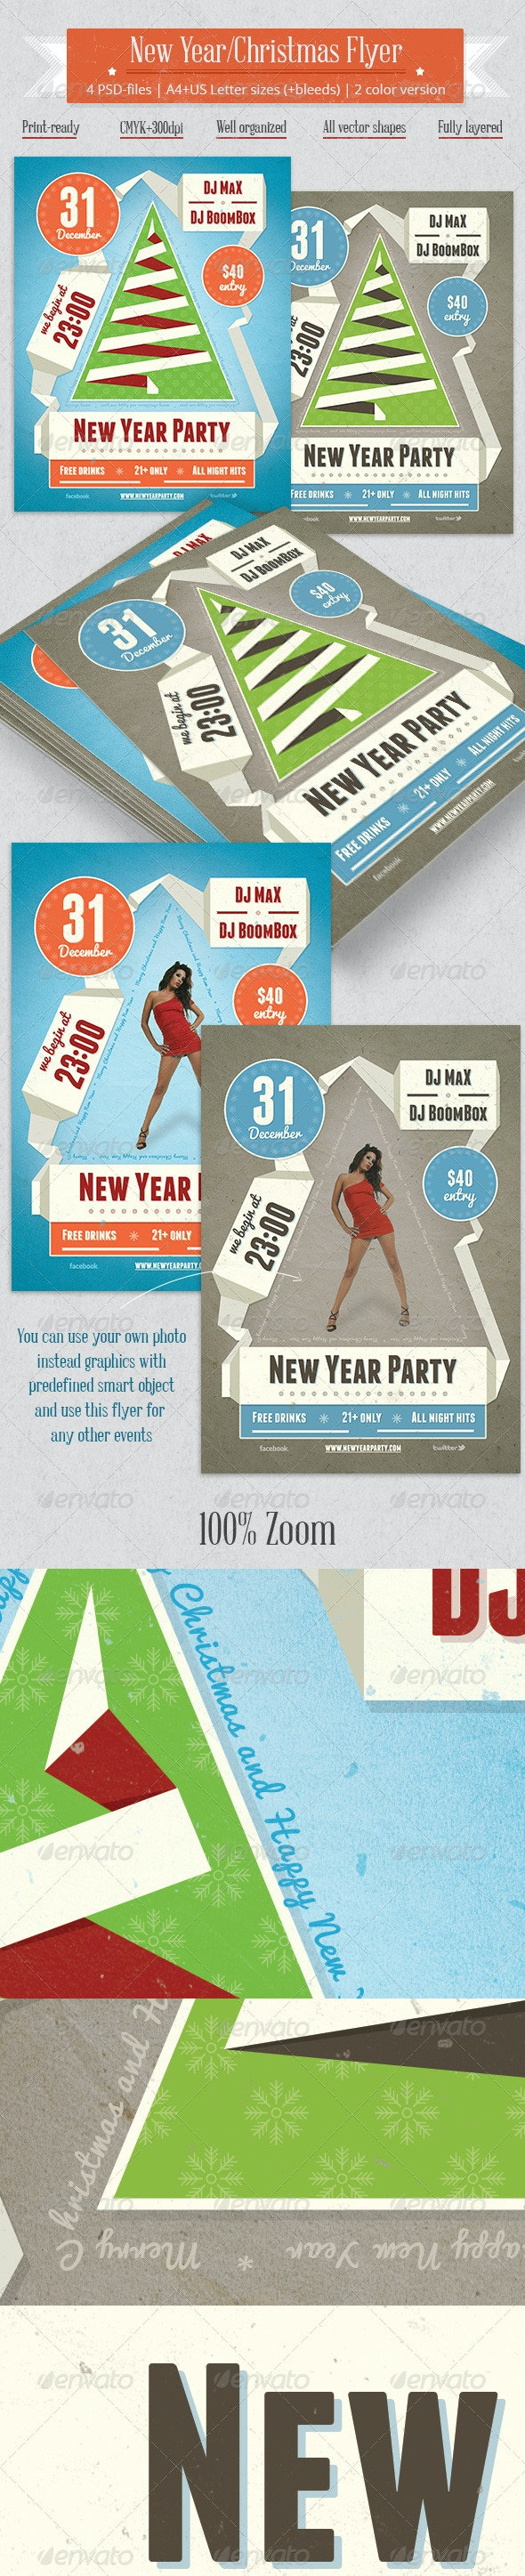 New Year/Party Flyer Vintage Ribbon Style - Clubs & Parties Events